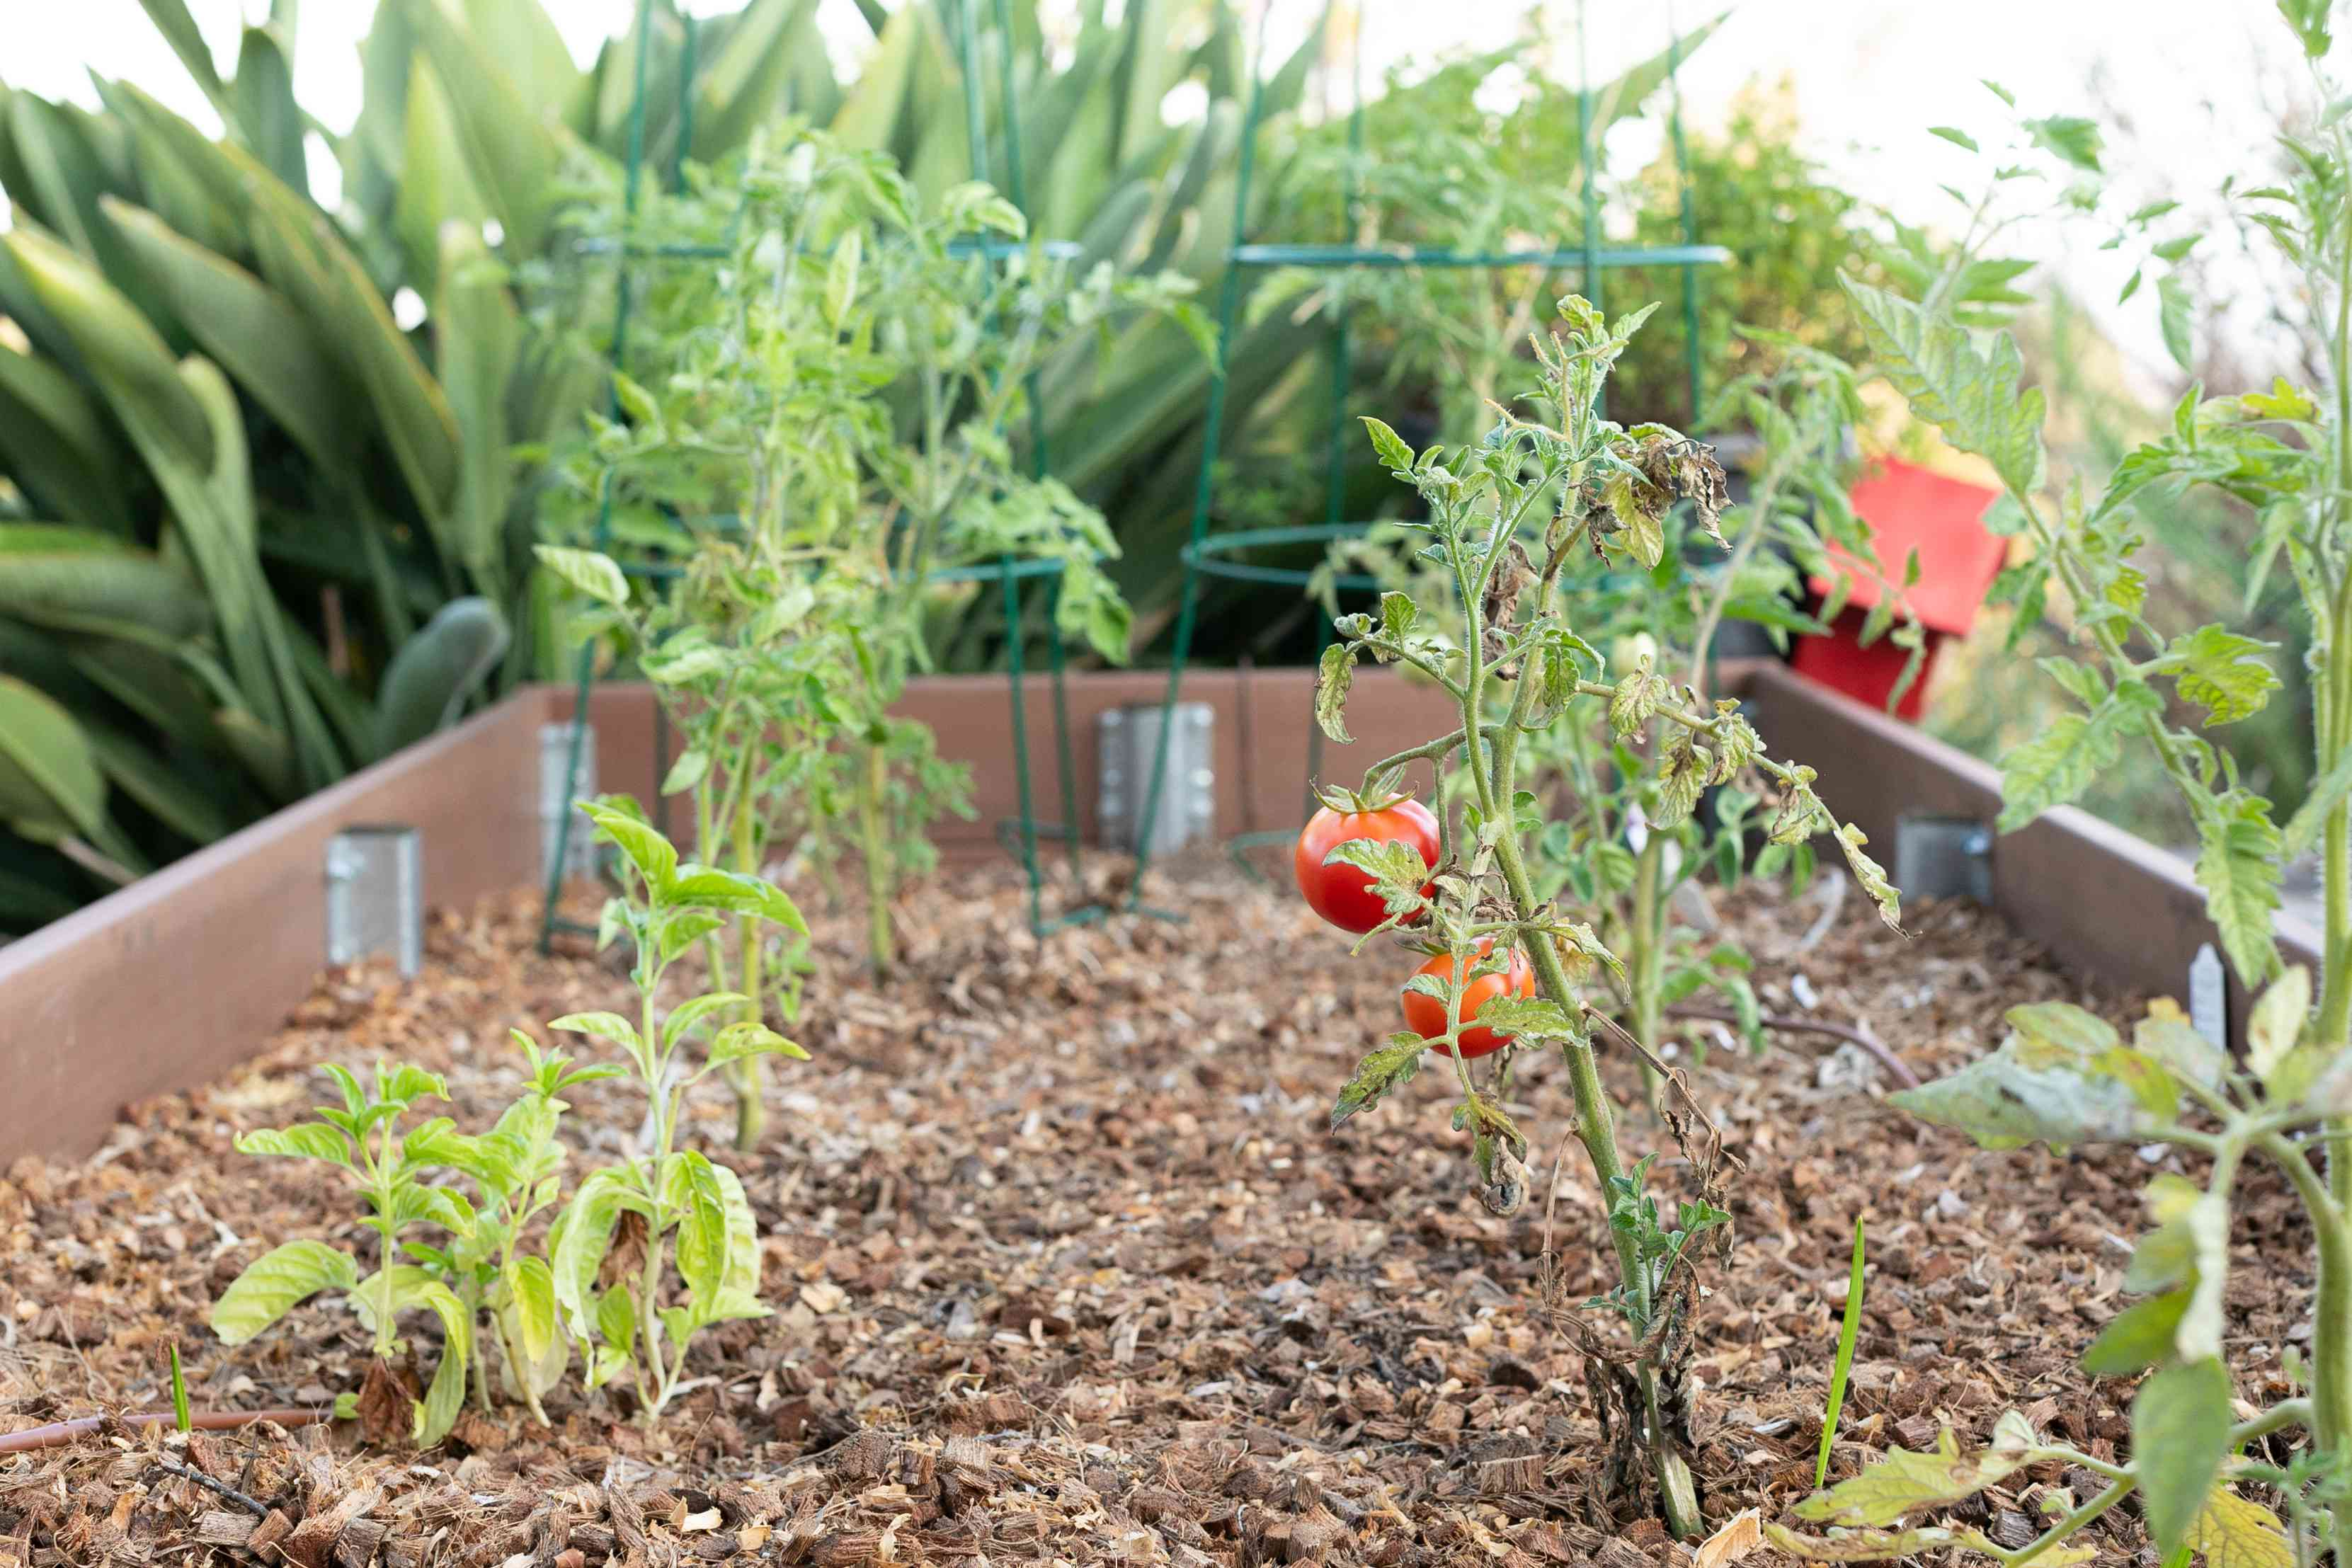 Vegetable garden plants designed and growing in wide rows in raised garden bed